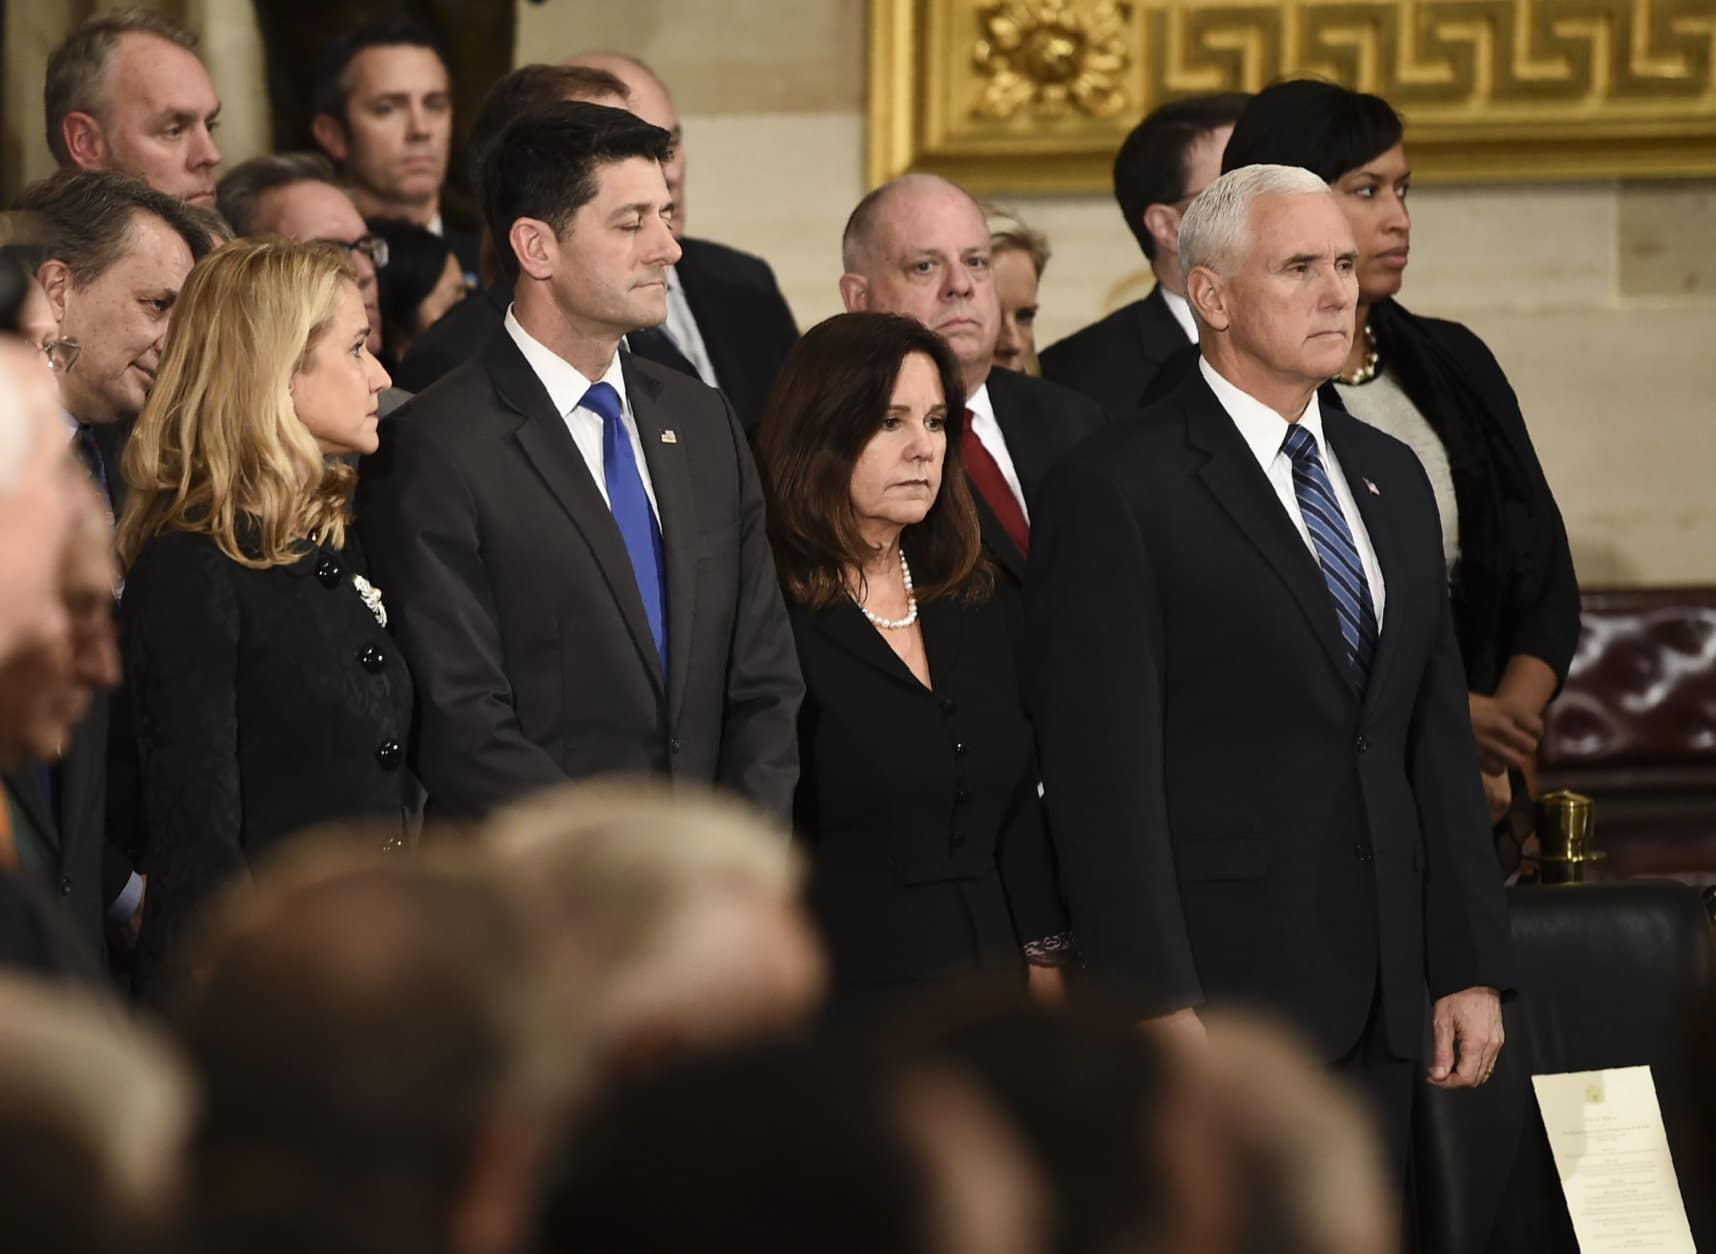 Vice President Mike Pence, from right, his wife Karen Pence, Speaker of the House of Representatives Paul Ryan, R-Wis., and his wife Janna Ryan wait for the arrival of the casket of former President George H.W. Bush at the Capitol in Washington, Monday, Dec. 3, 2018. (Brendan Smialowski/Pool Photo via AP)